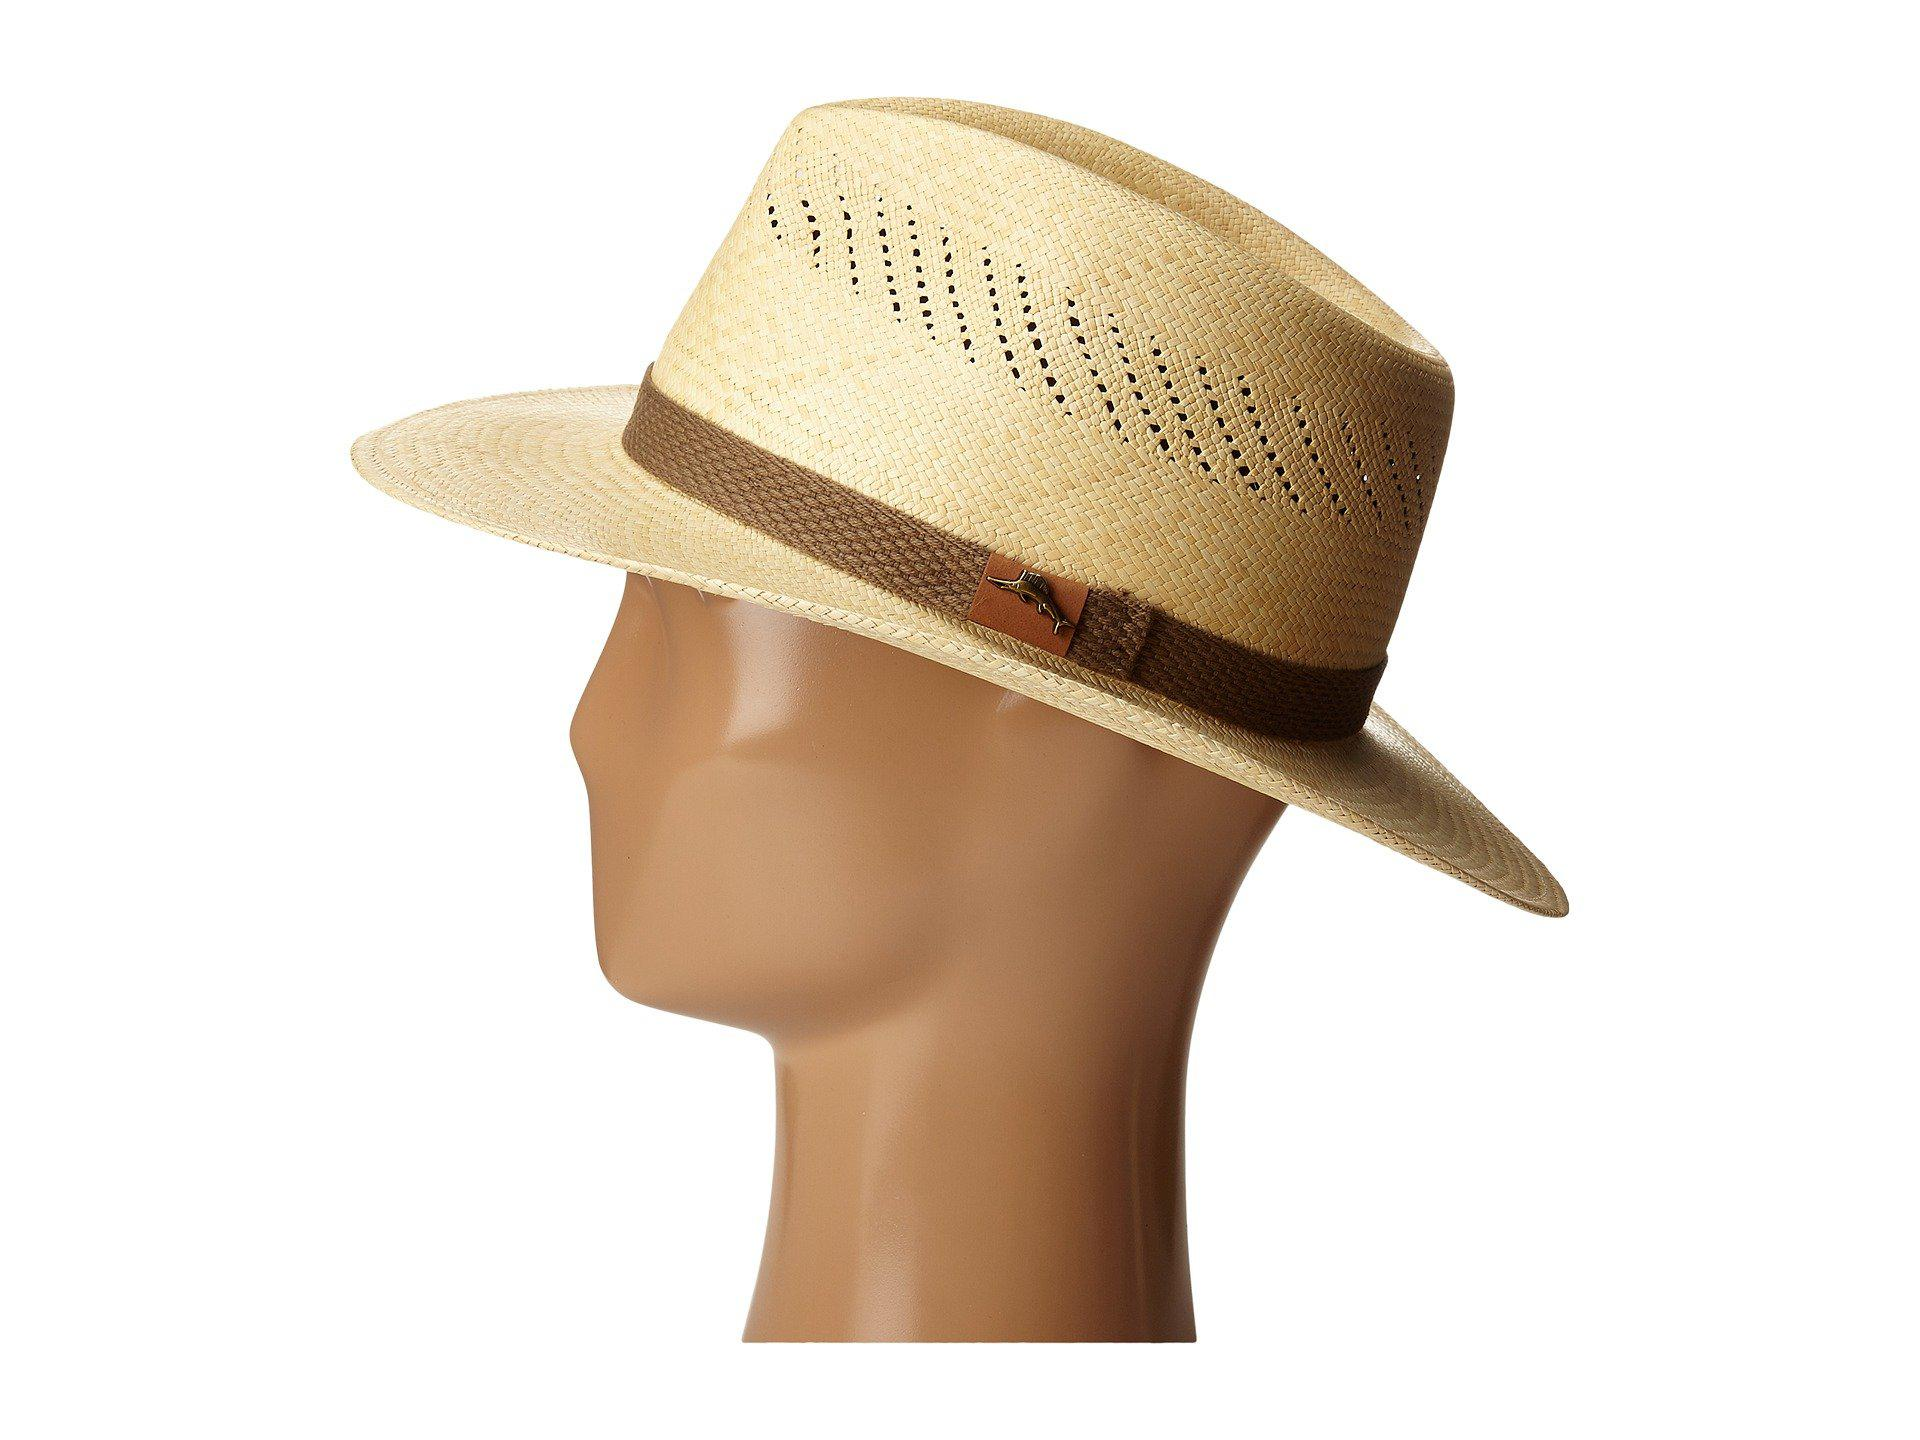 bcfb745d799 Lyst - Tommy Bahama Panama Vent Outback (natural) Caps in Natural ...